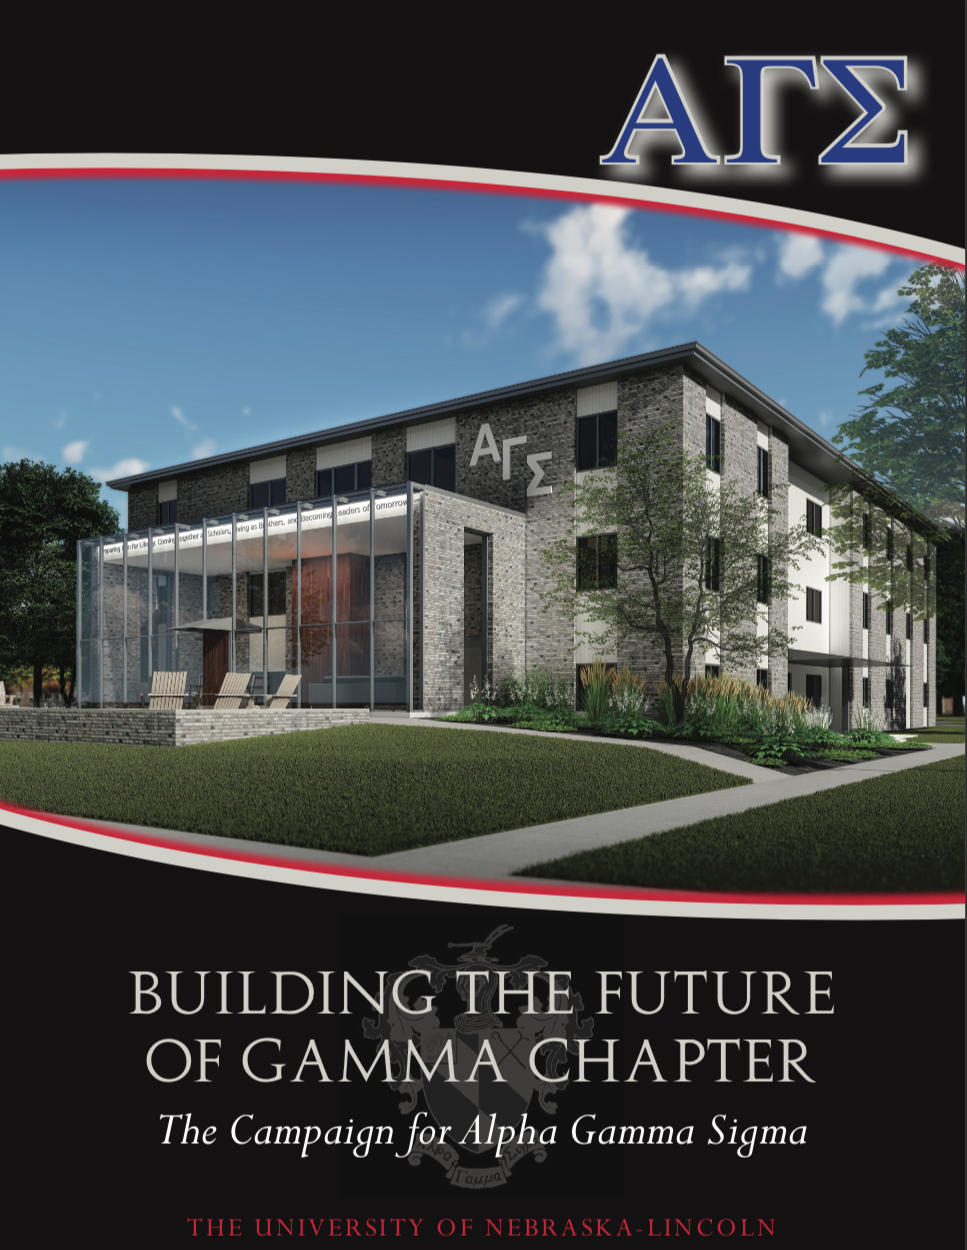 Building the Future of Gamma Chapter